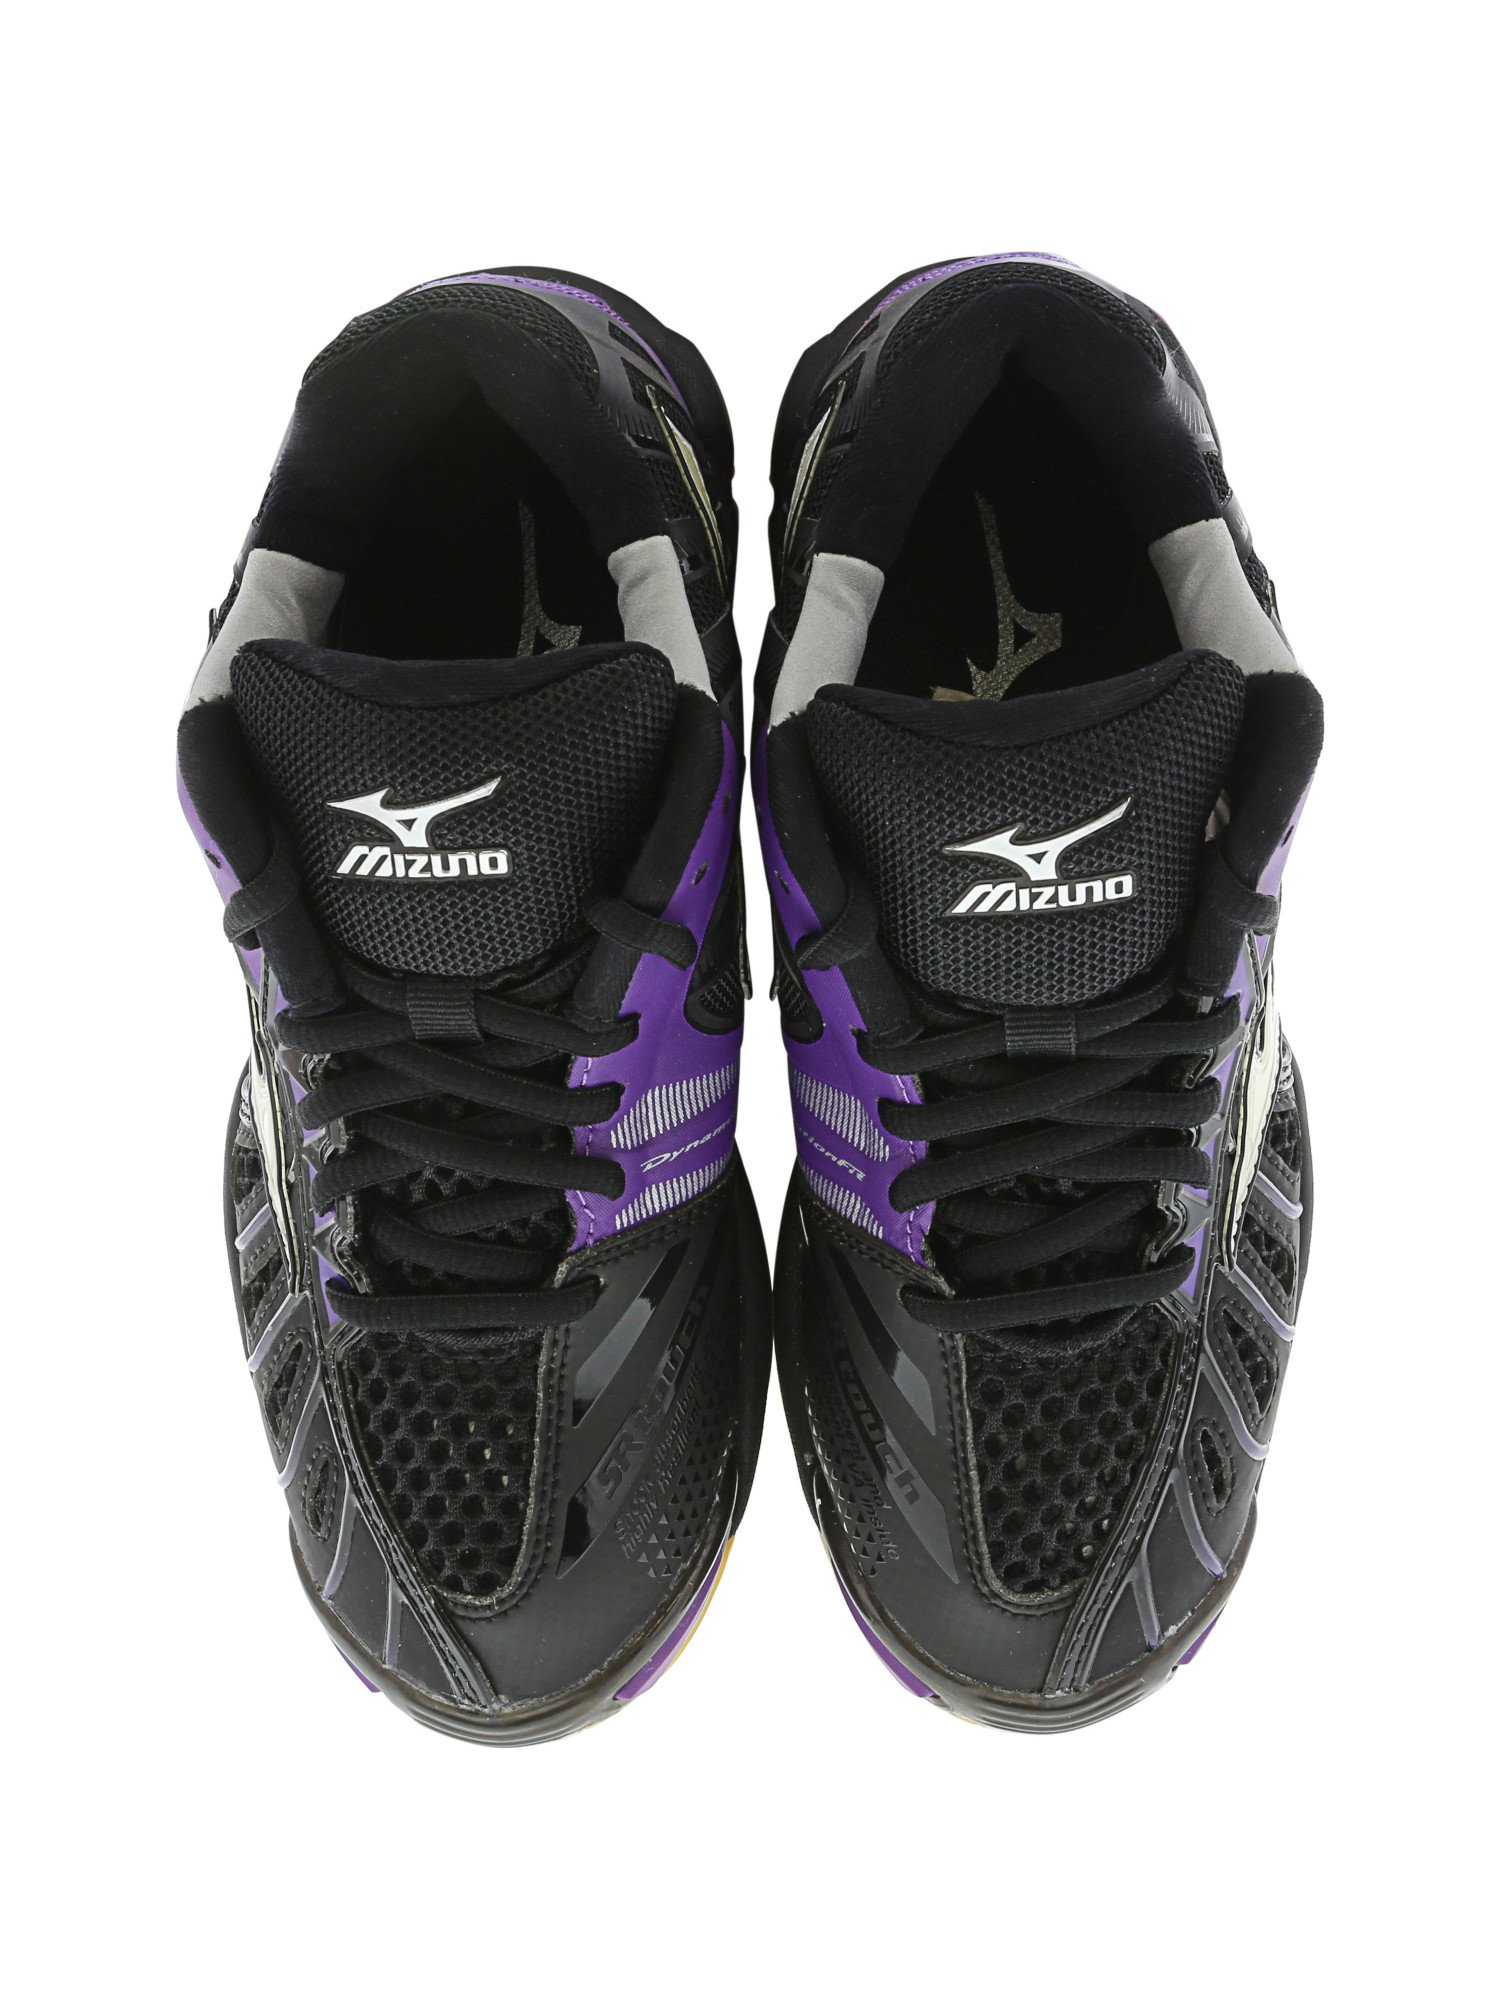 mizuno womens volleyball shoes size 8 x 4 hs measure price